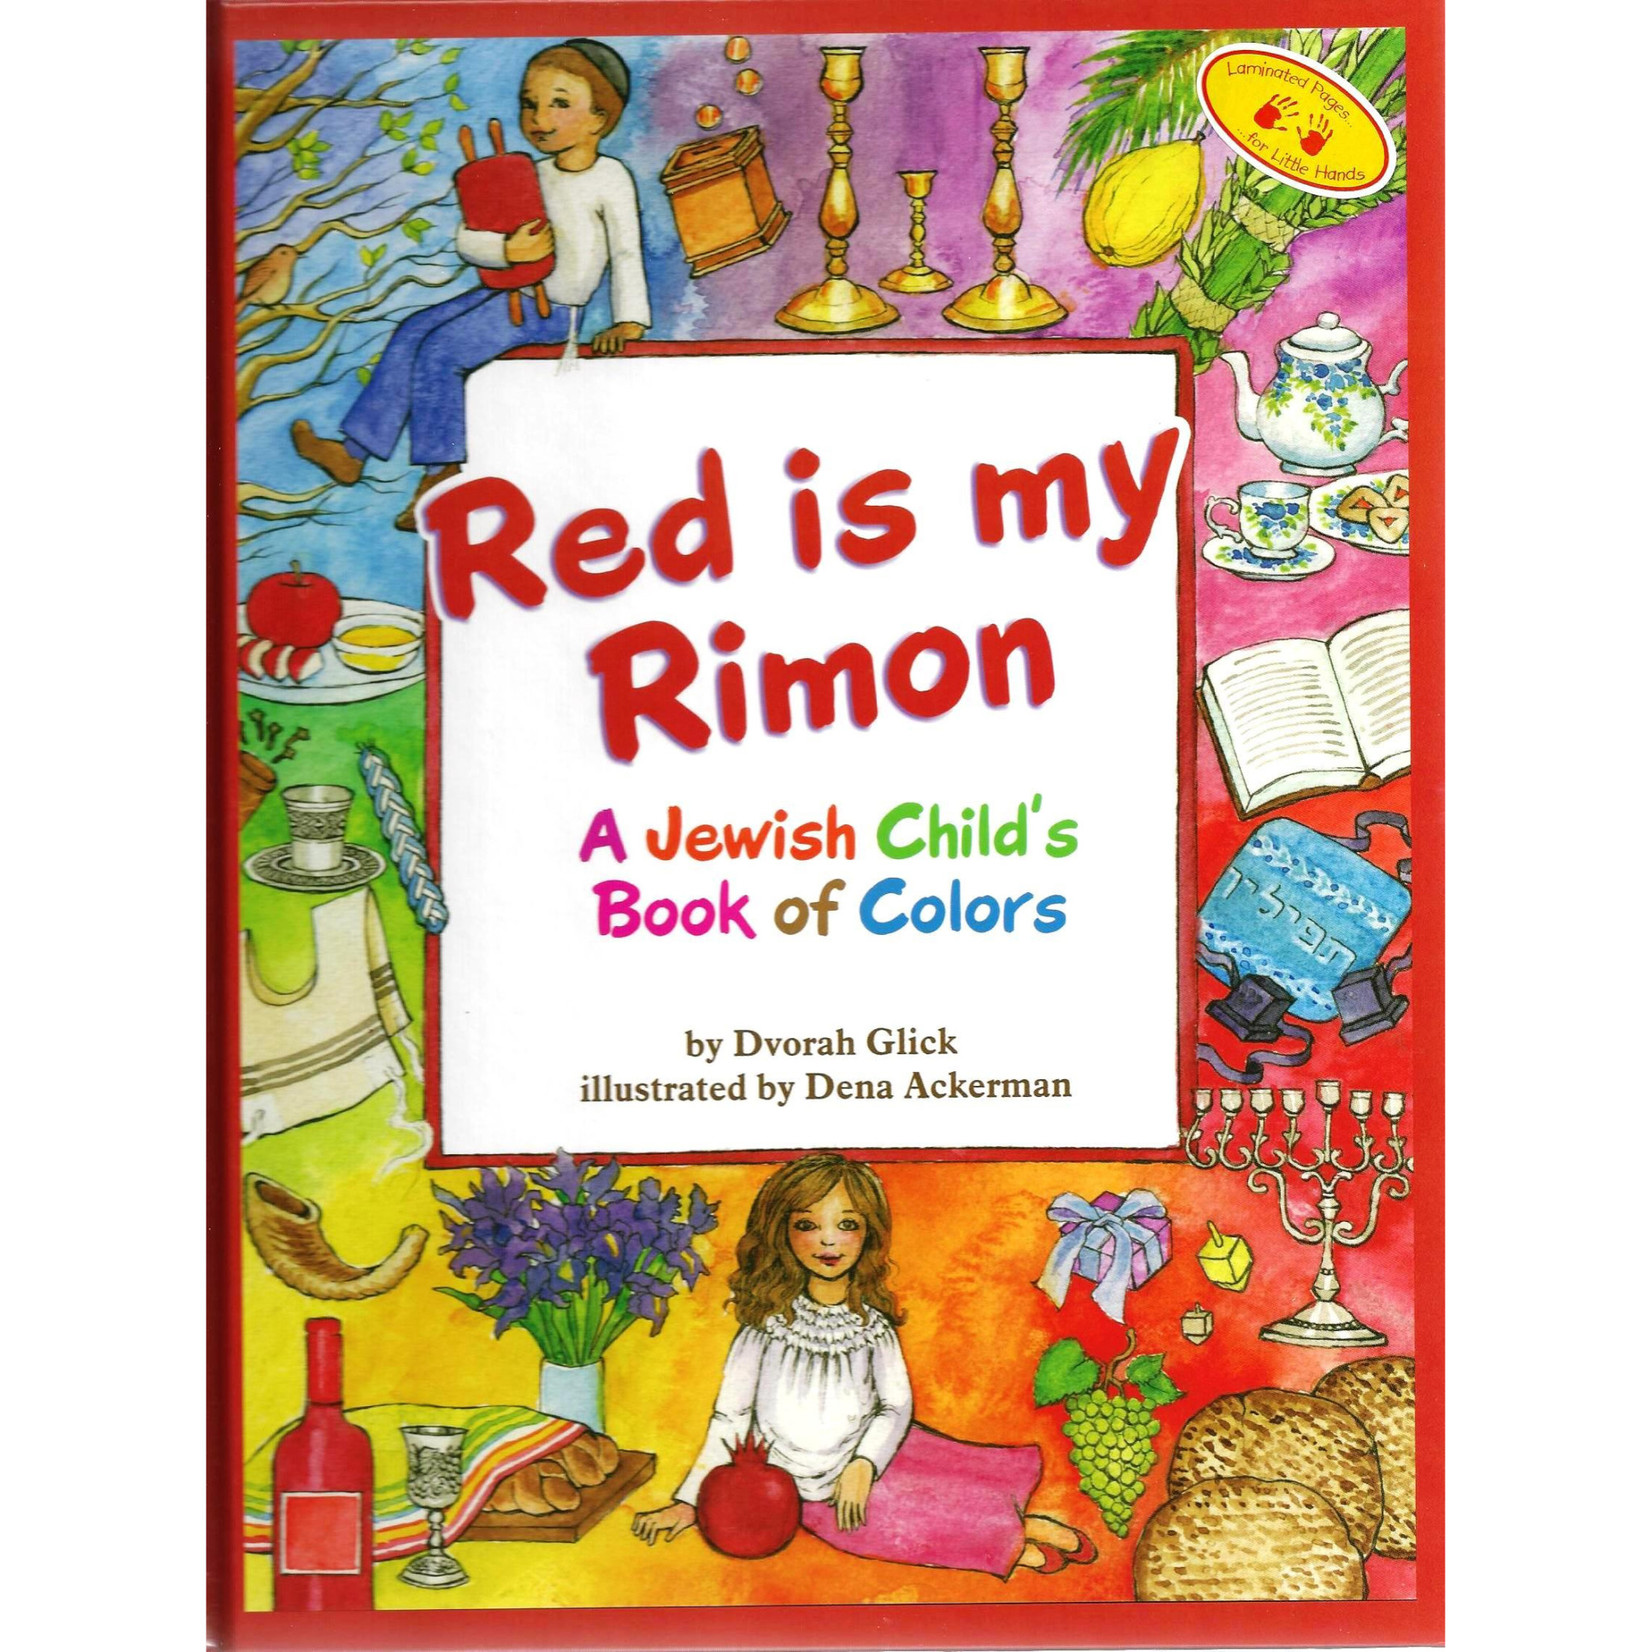 Red Rimon - A Jewish Child's Book of Colors